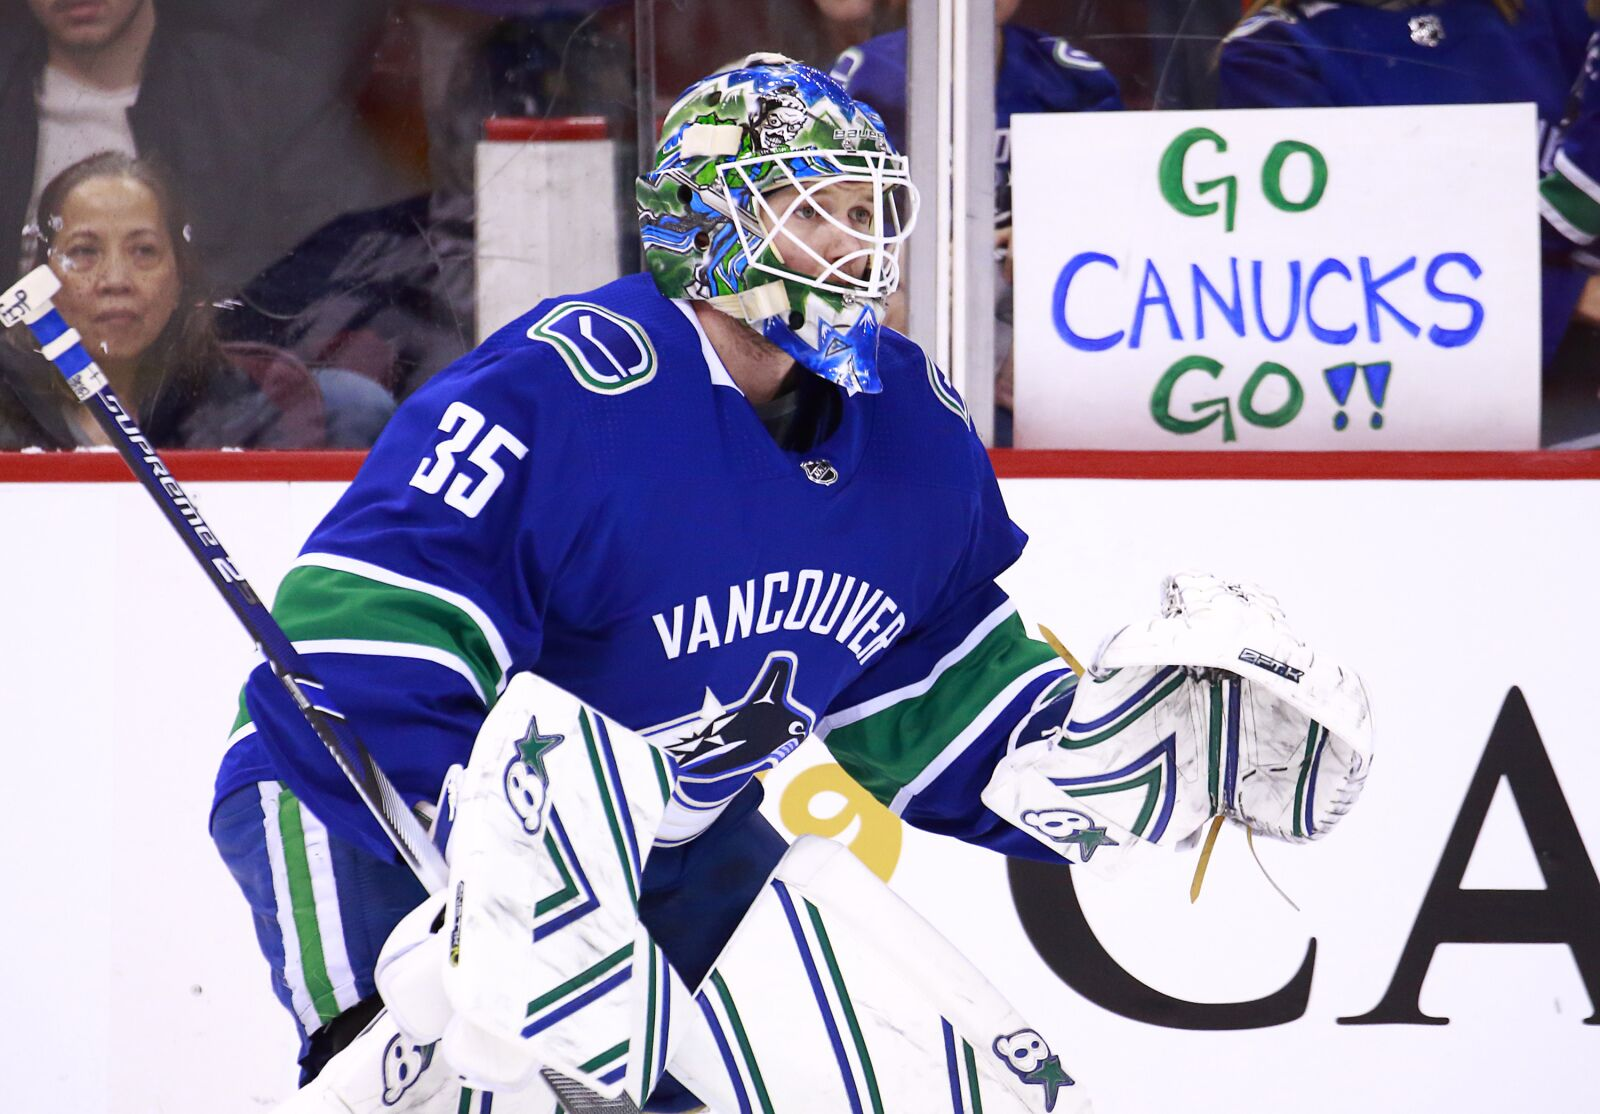 Vancouver Canucks: The Athletic ranks Thatcher Demko as top goalie prospect